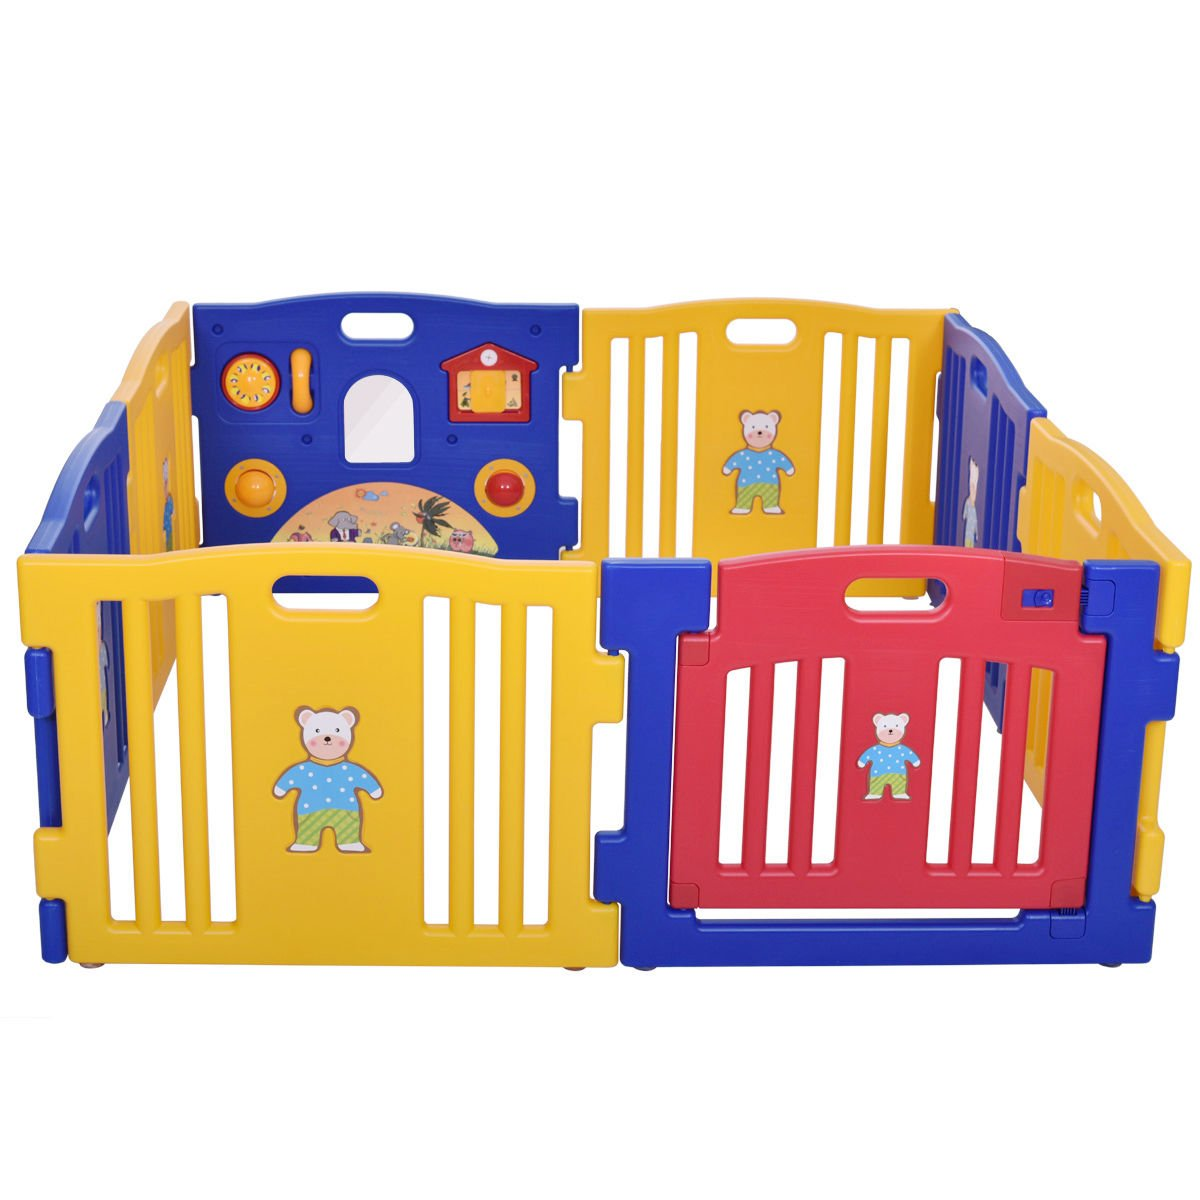 New 8 Panel Safety Play Center Baby Playpen Kids Yard Home Indoor Outdoor Pen by Eade shop (Image #2)